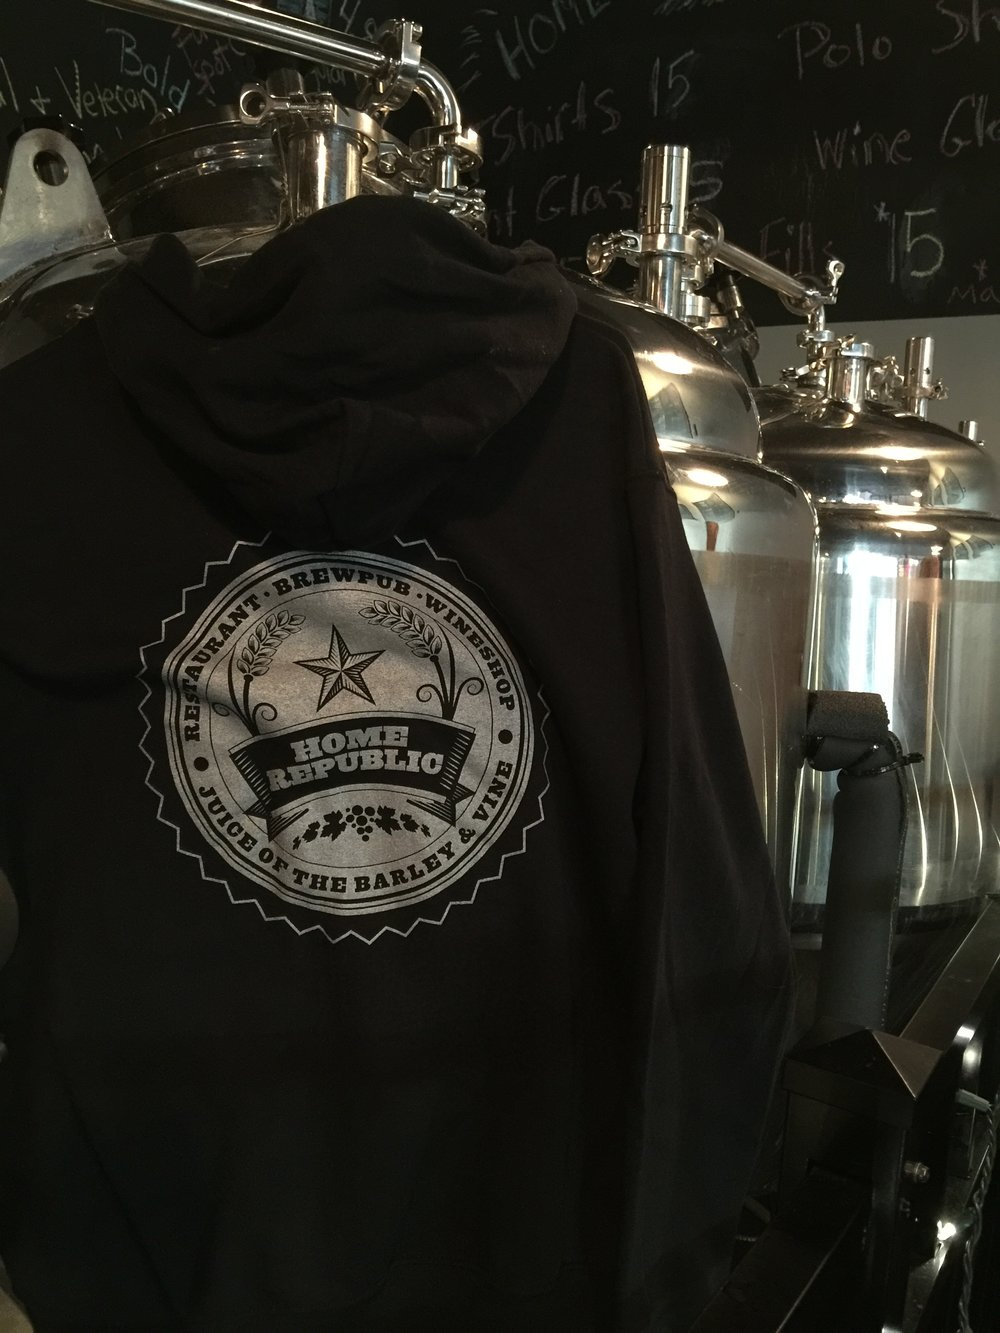 Home Republic Zip Hoodie in Metallic Silver.  Front.  Sizes: S, M, L, XL $35 + Shipping